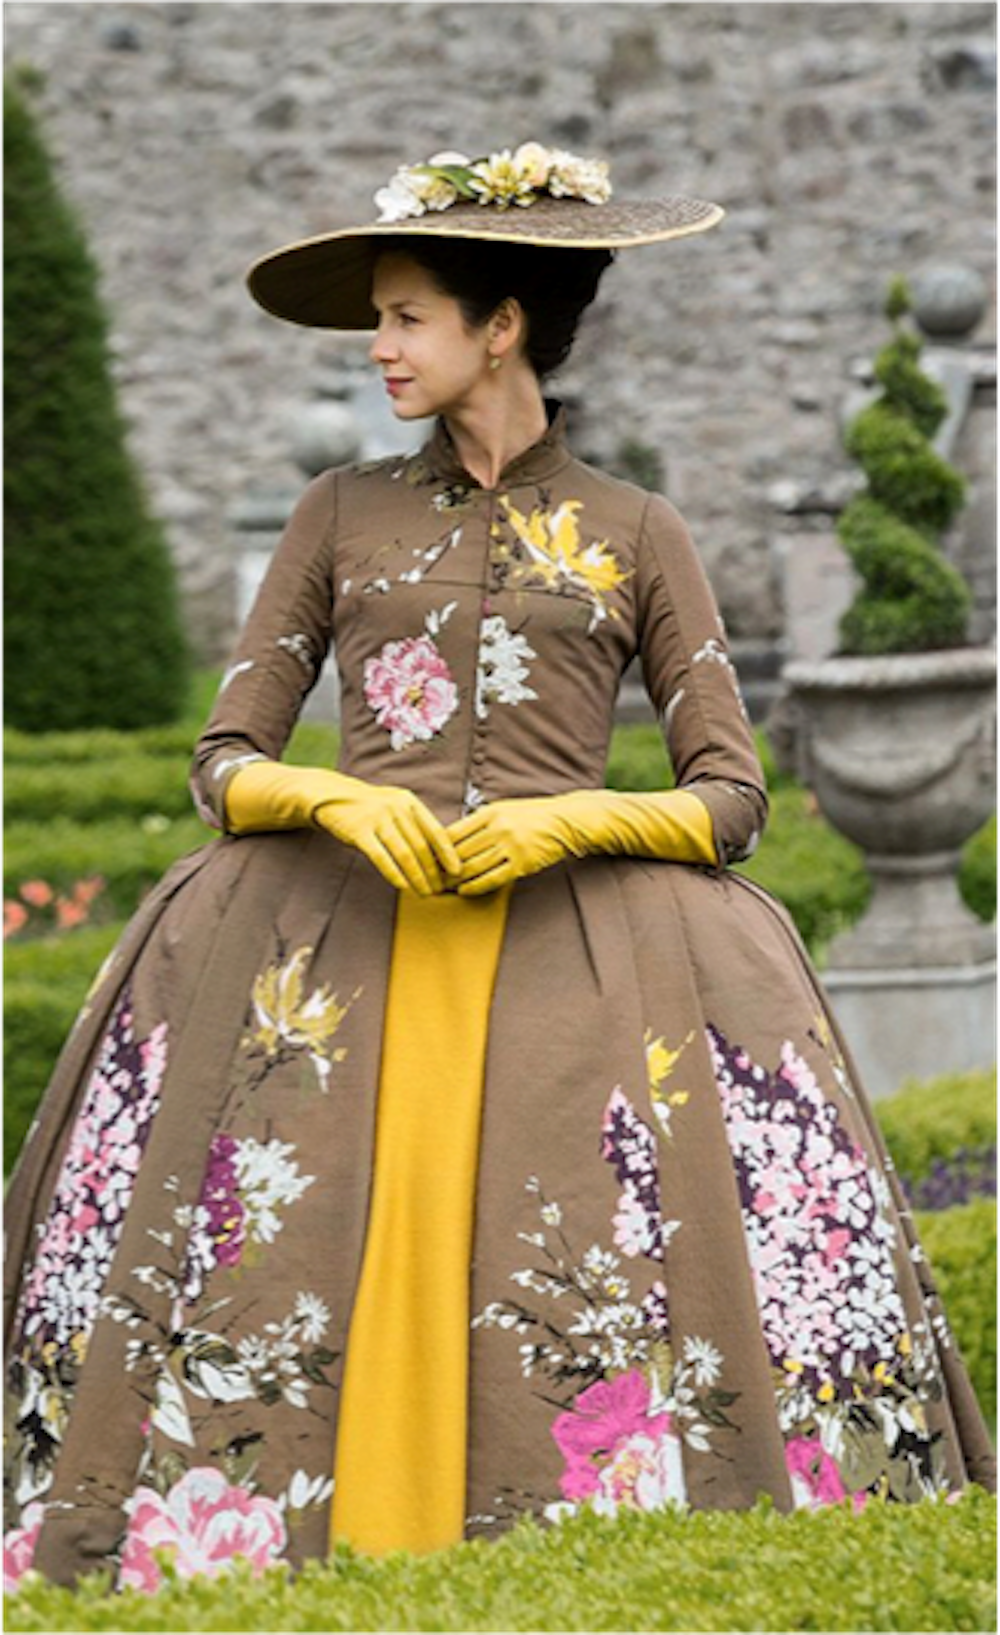 d454050de25 How accurate are the costumes in TV period dramas